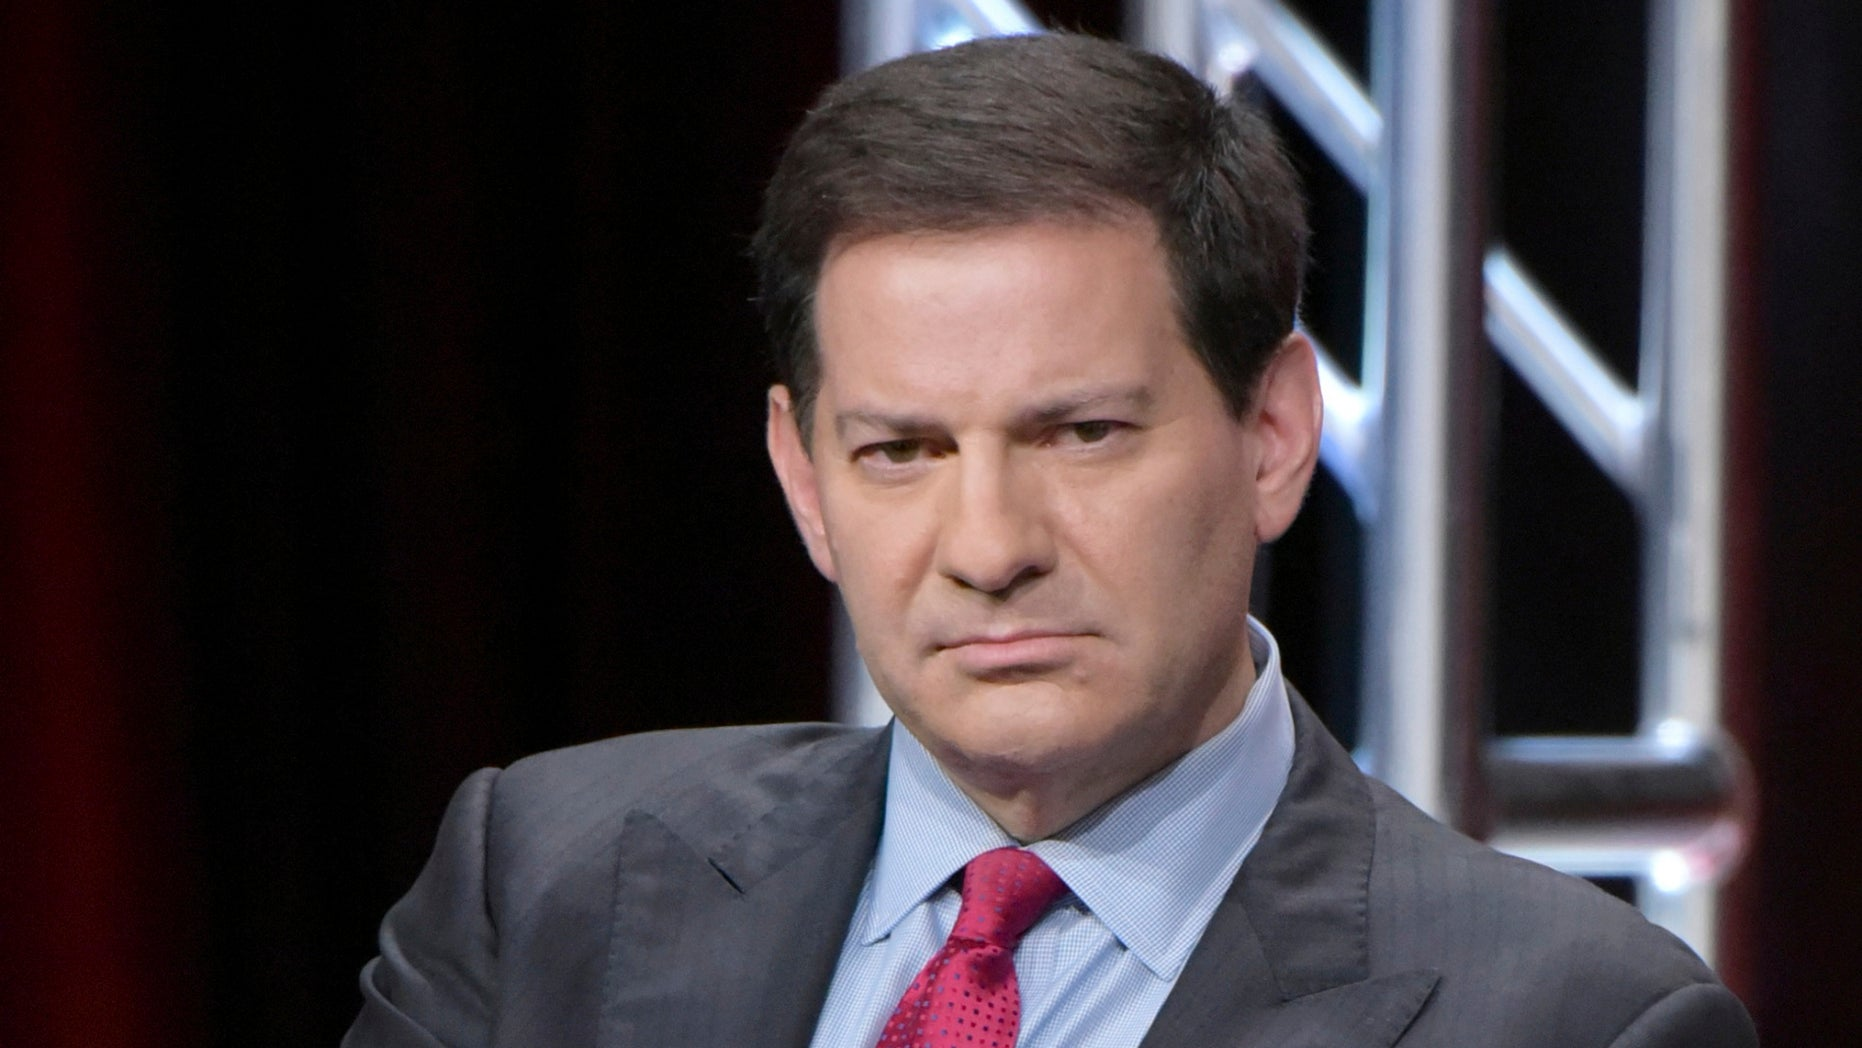 Two additional women have come forward alleging that Mark Halperin sexually harassed them.